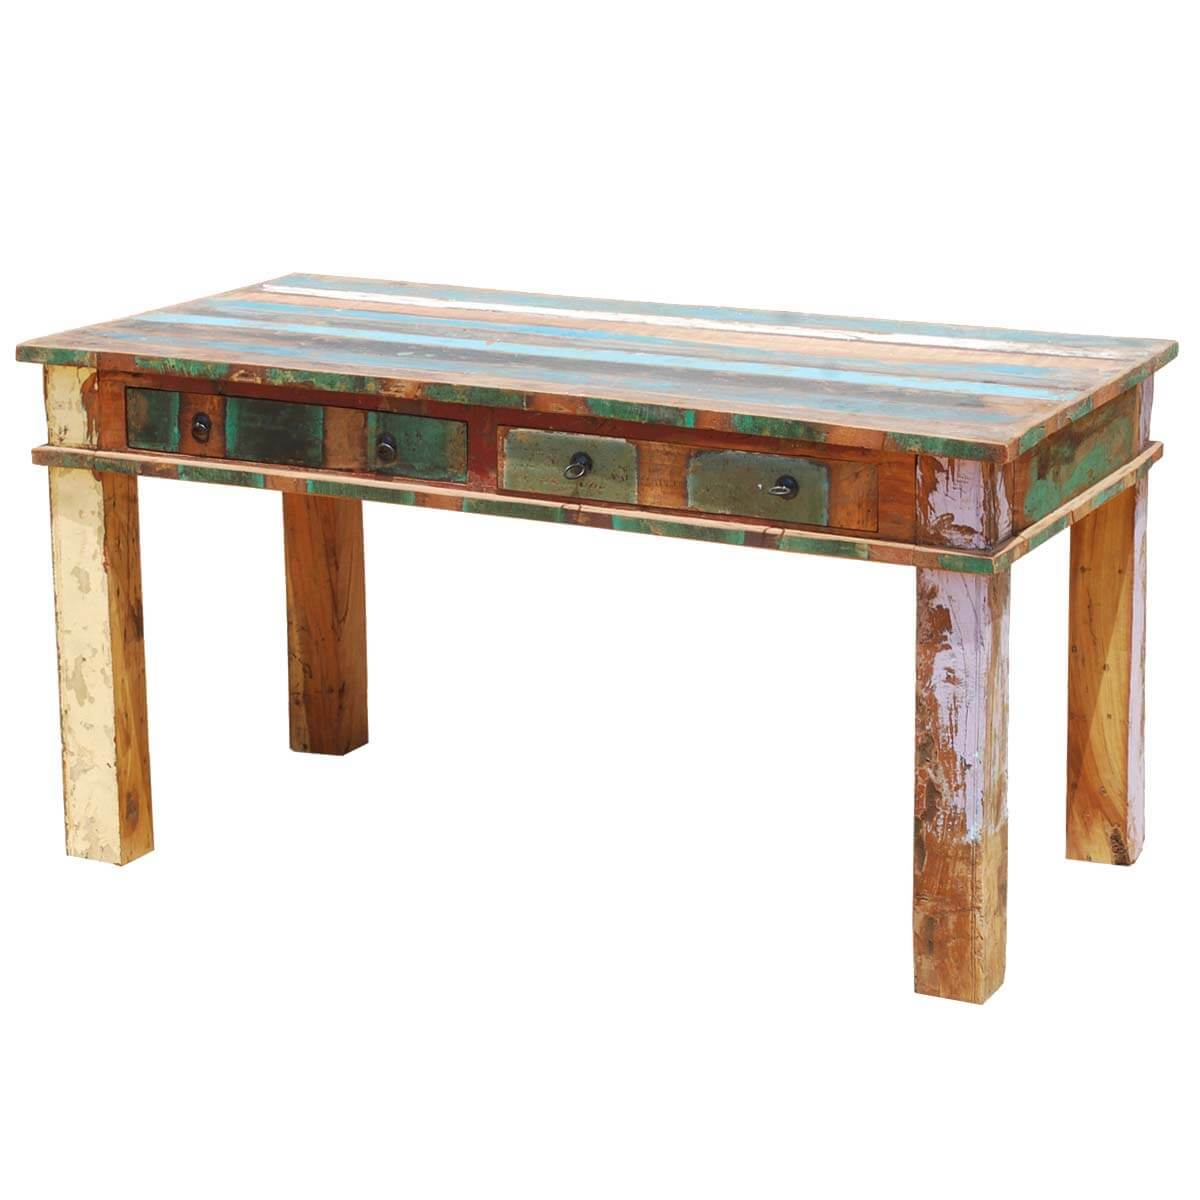 Reclaimed wood rustic dining room table furniture for Reclaimed dining room table